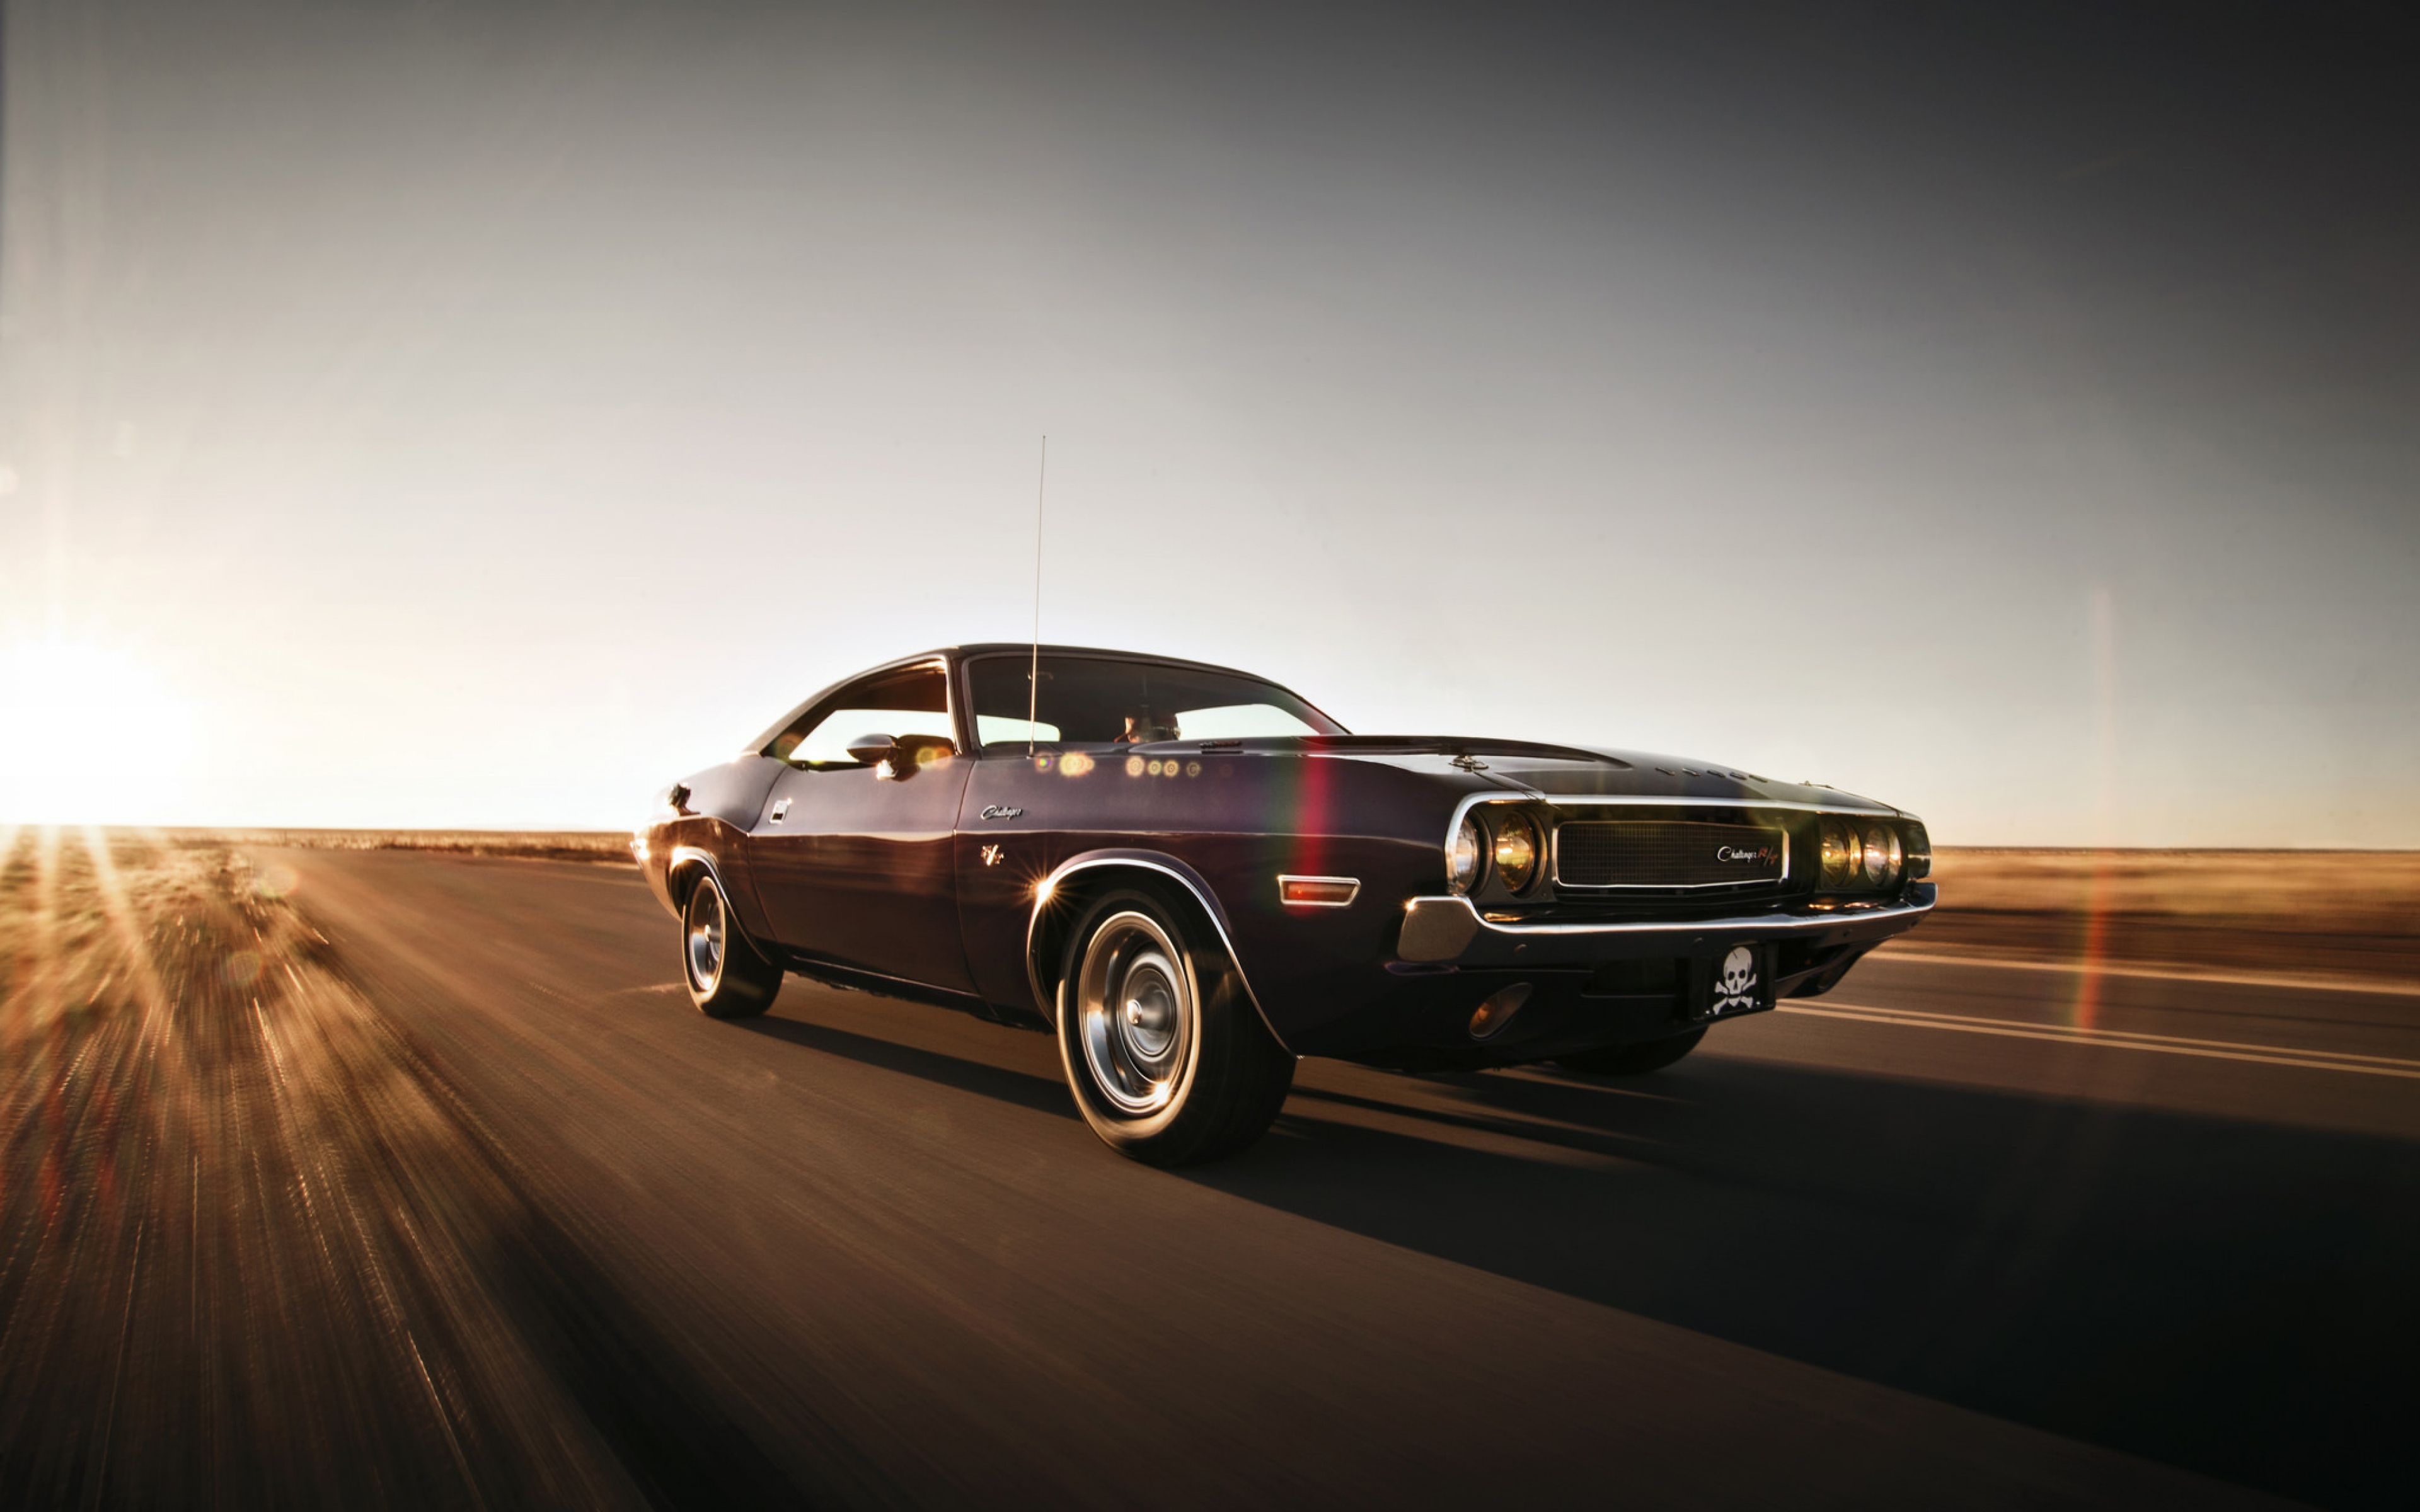 Classic Cars Hd Wallpapers 4k: Dodge Challenger, HD Cars, 4k Wallpapers, Images